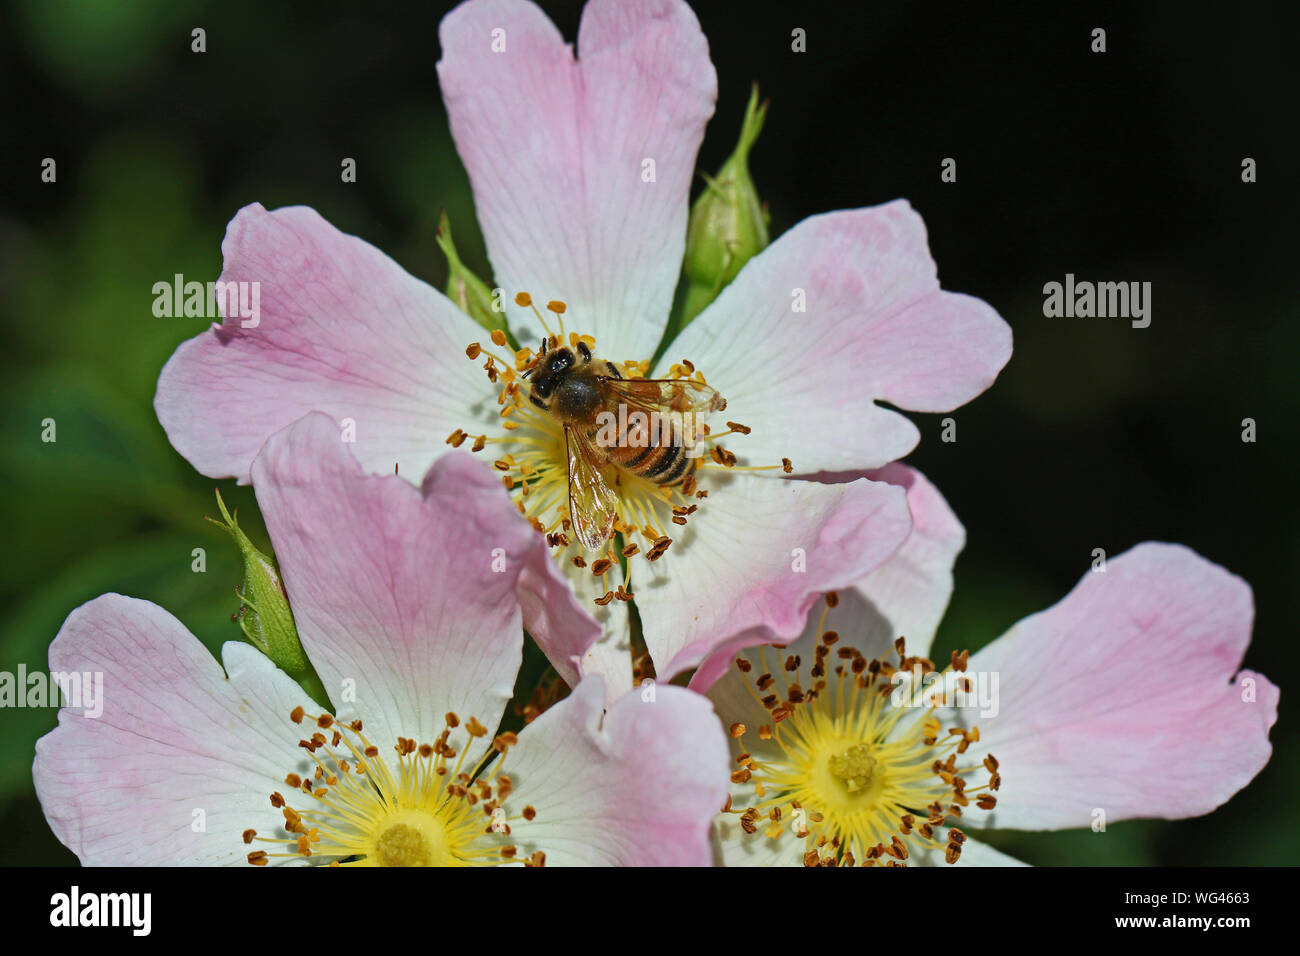 honey bee on a prairie rose or wild rose Latin rosa canina and similar to a sweet briar or eglantine state flower or state symbol of Iowa and N Dakota Stock Photo